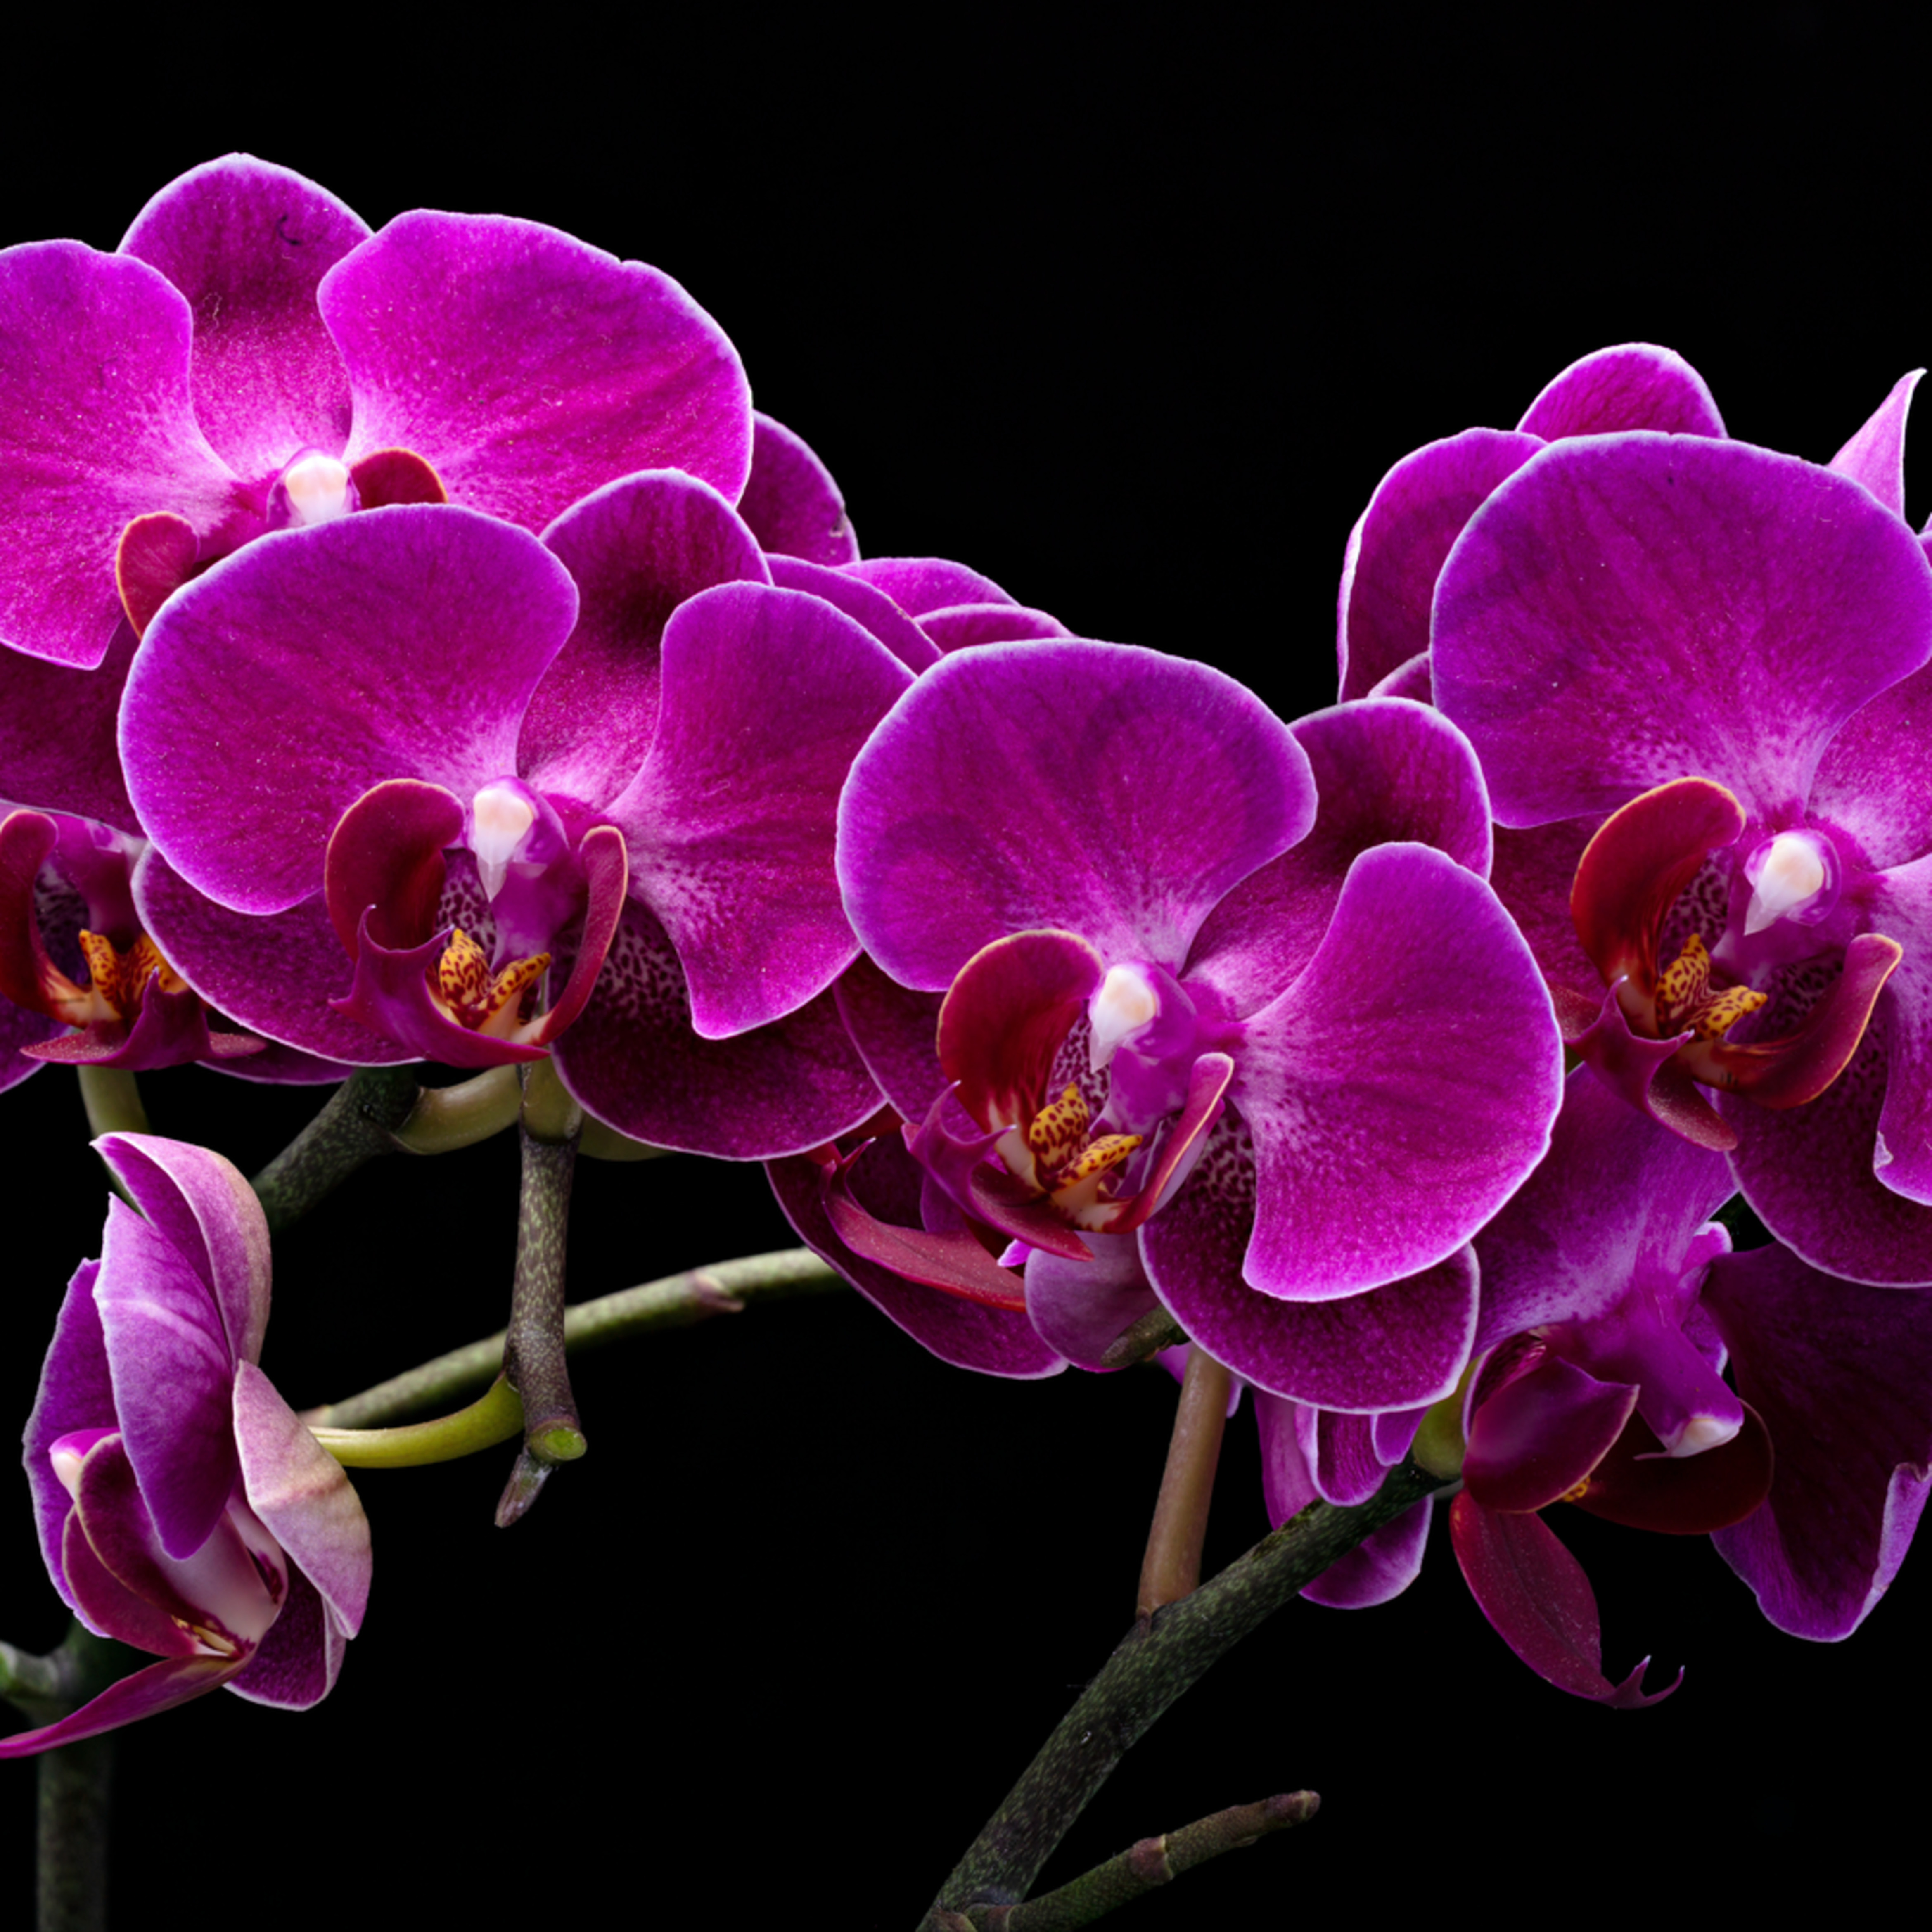 Orchids 1 r1zltx